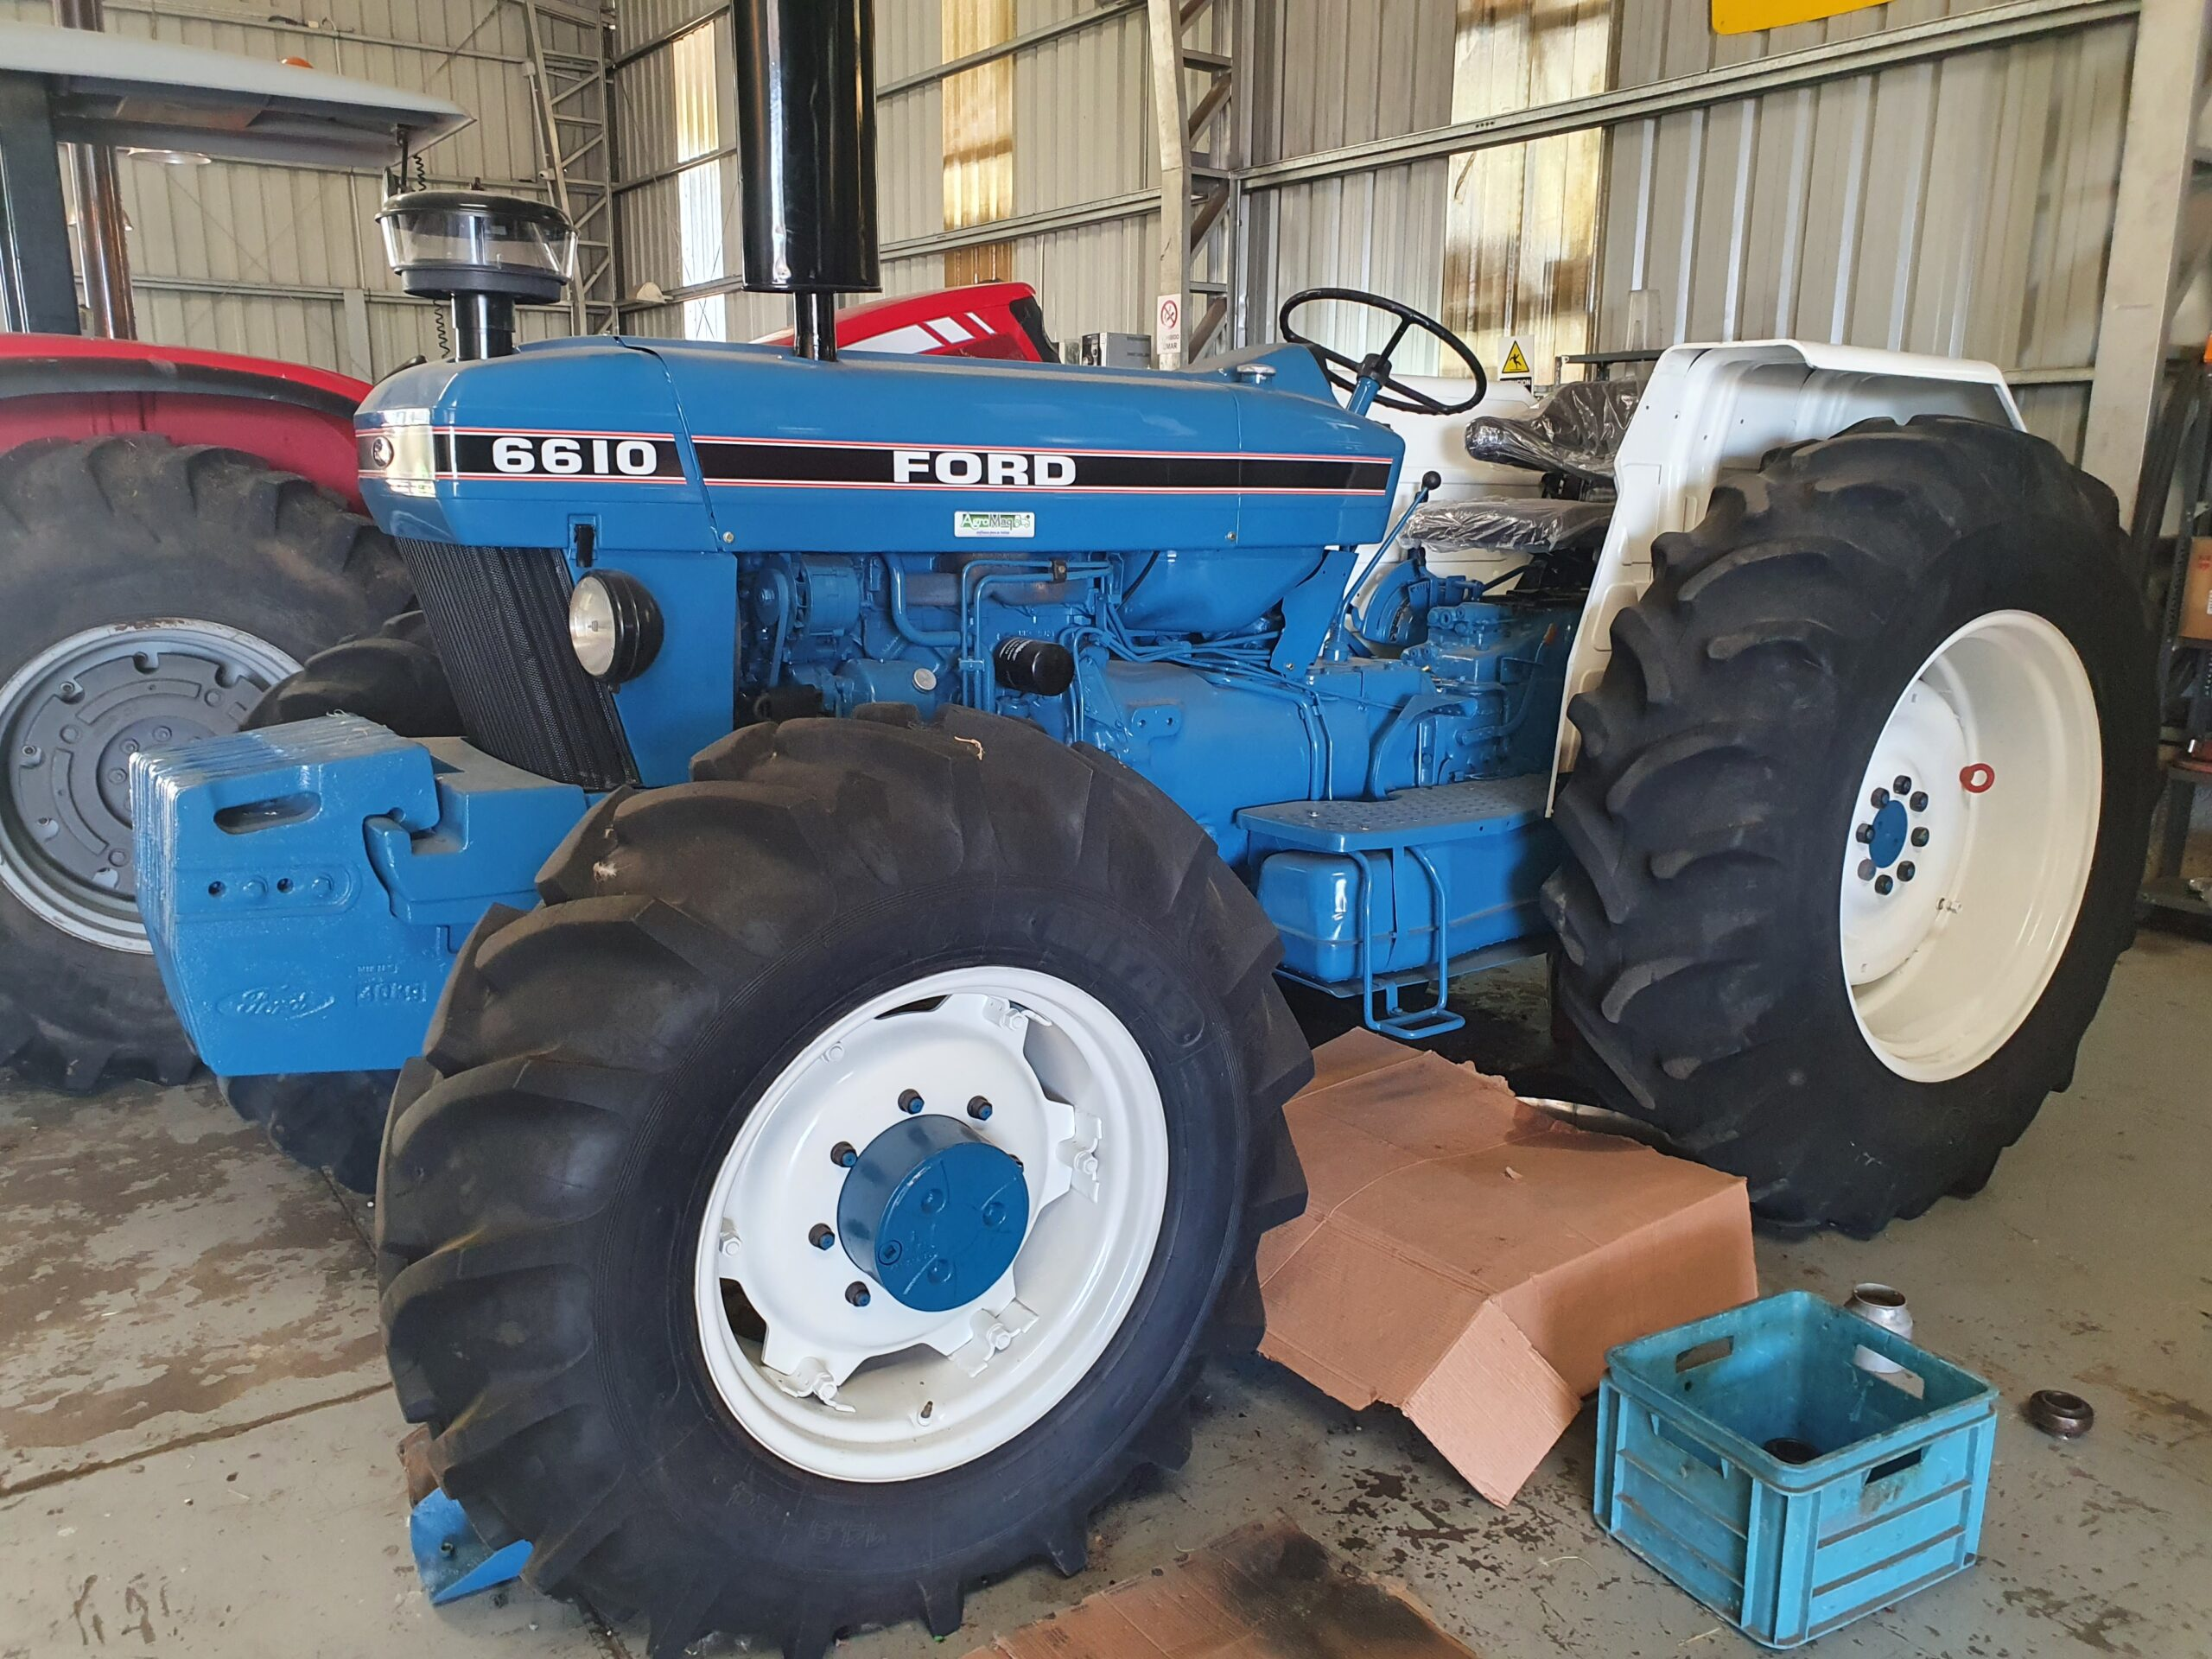 Tractor ford 6610.